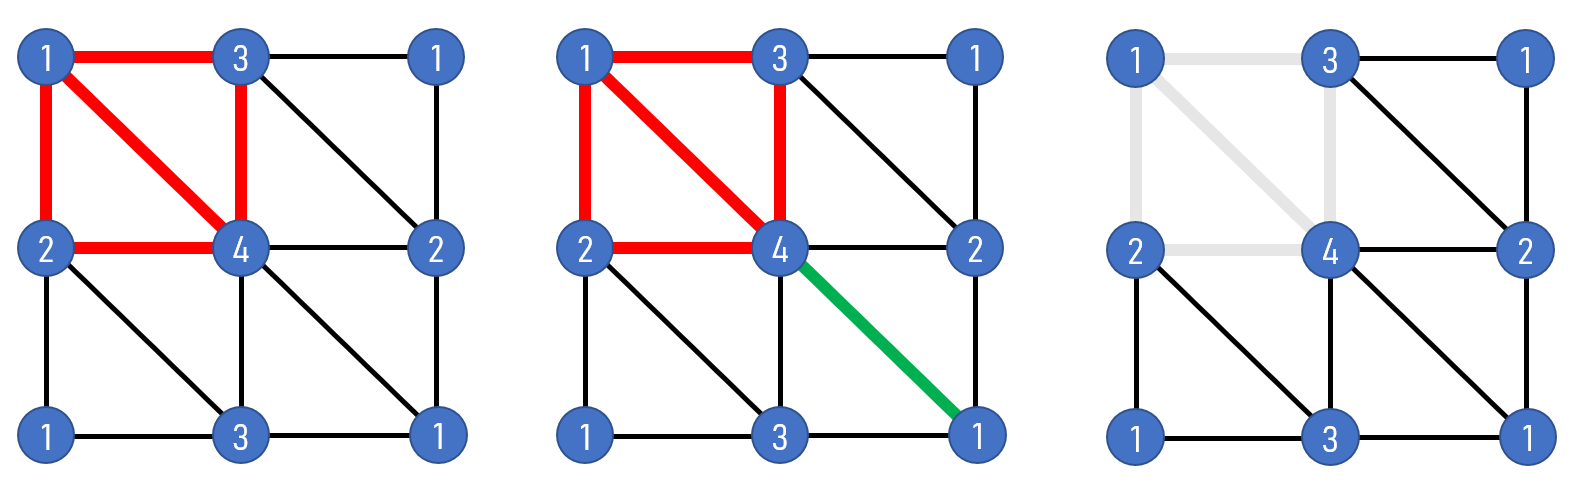 fundamental group of torus using irregular triangulation